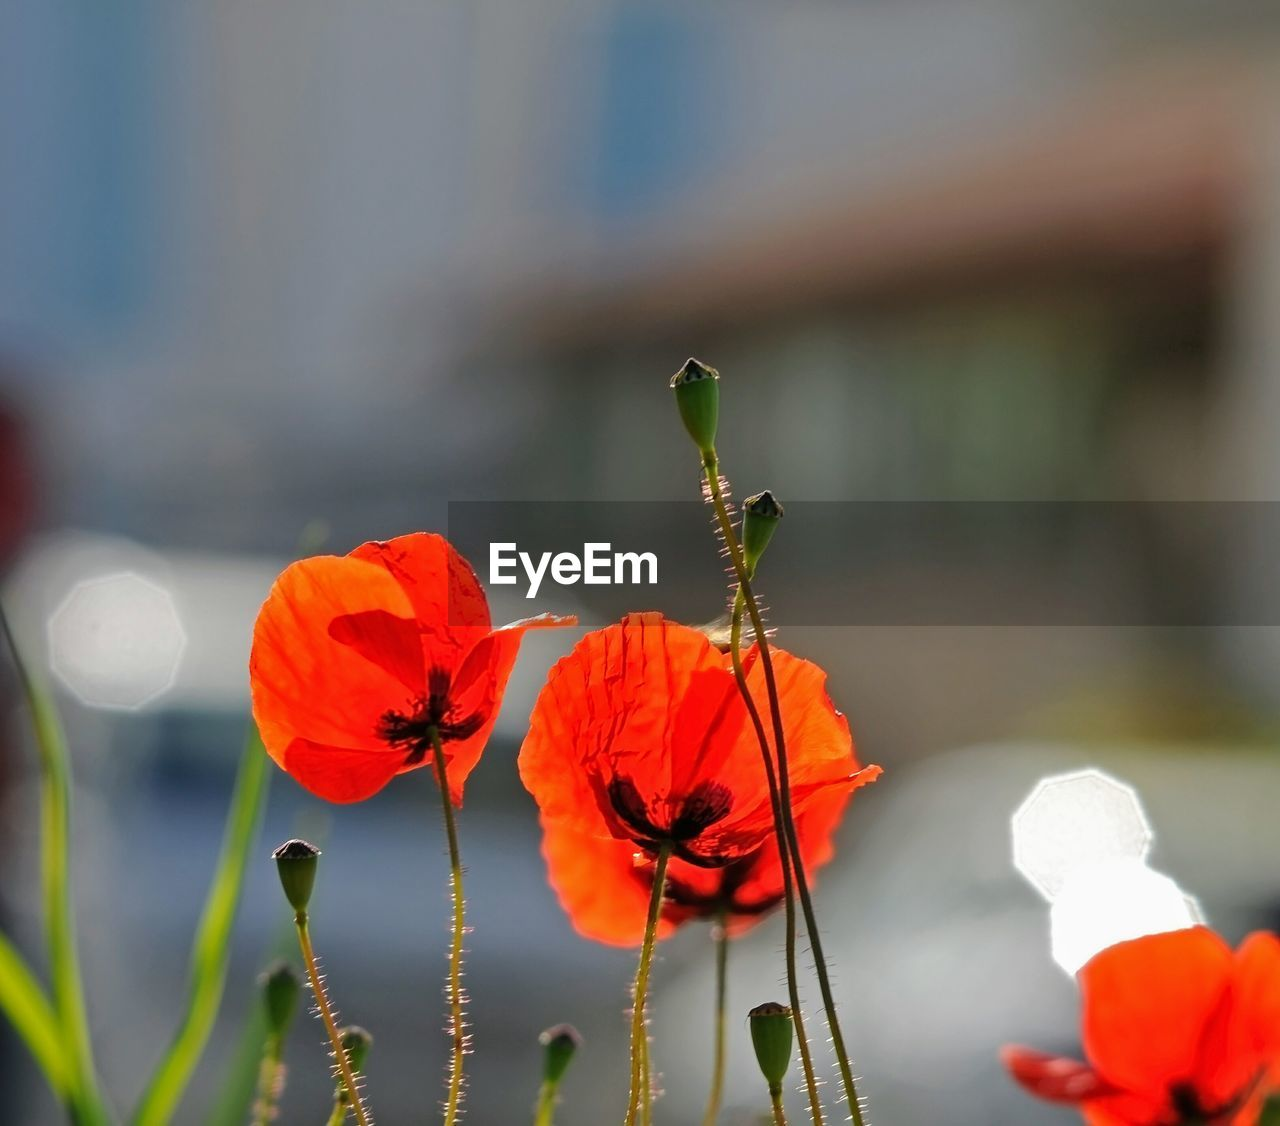 flowering plant, flower, plant, beauty in nature, vulnerability, fragility, petal, freshness, close-up, inflorescence, growth, flower head, focus on foreground, nature, plant stem, day, no people, poppy, outdoors, red, orange